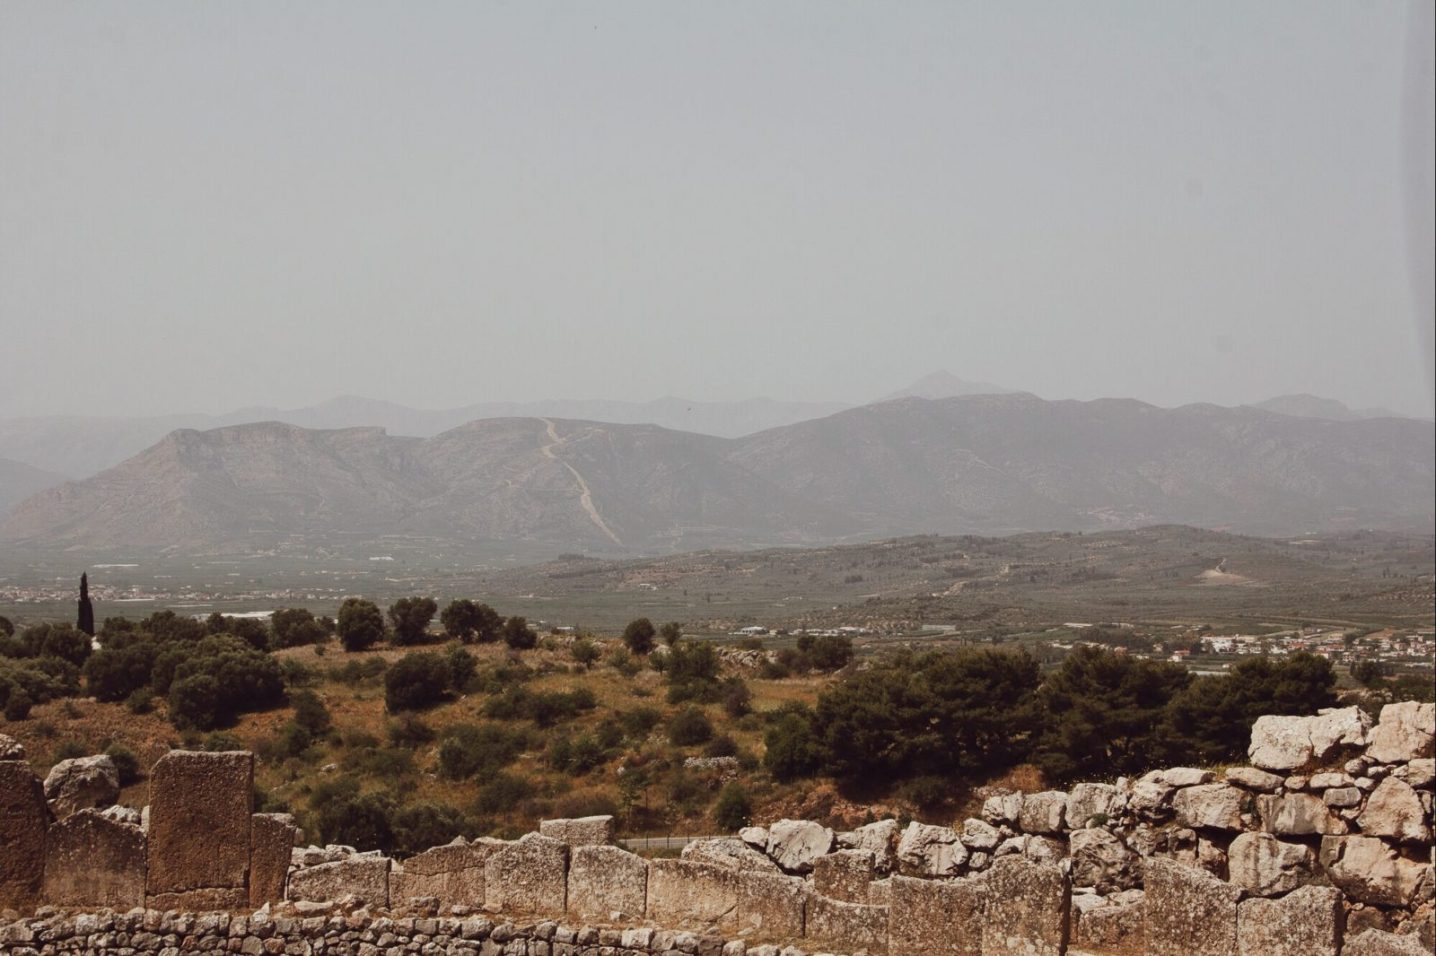 Can you see King Agamemnon's profile in the mountains?!